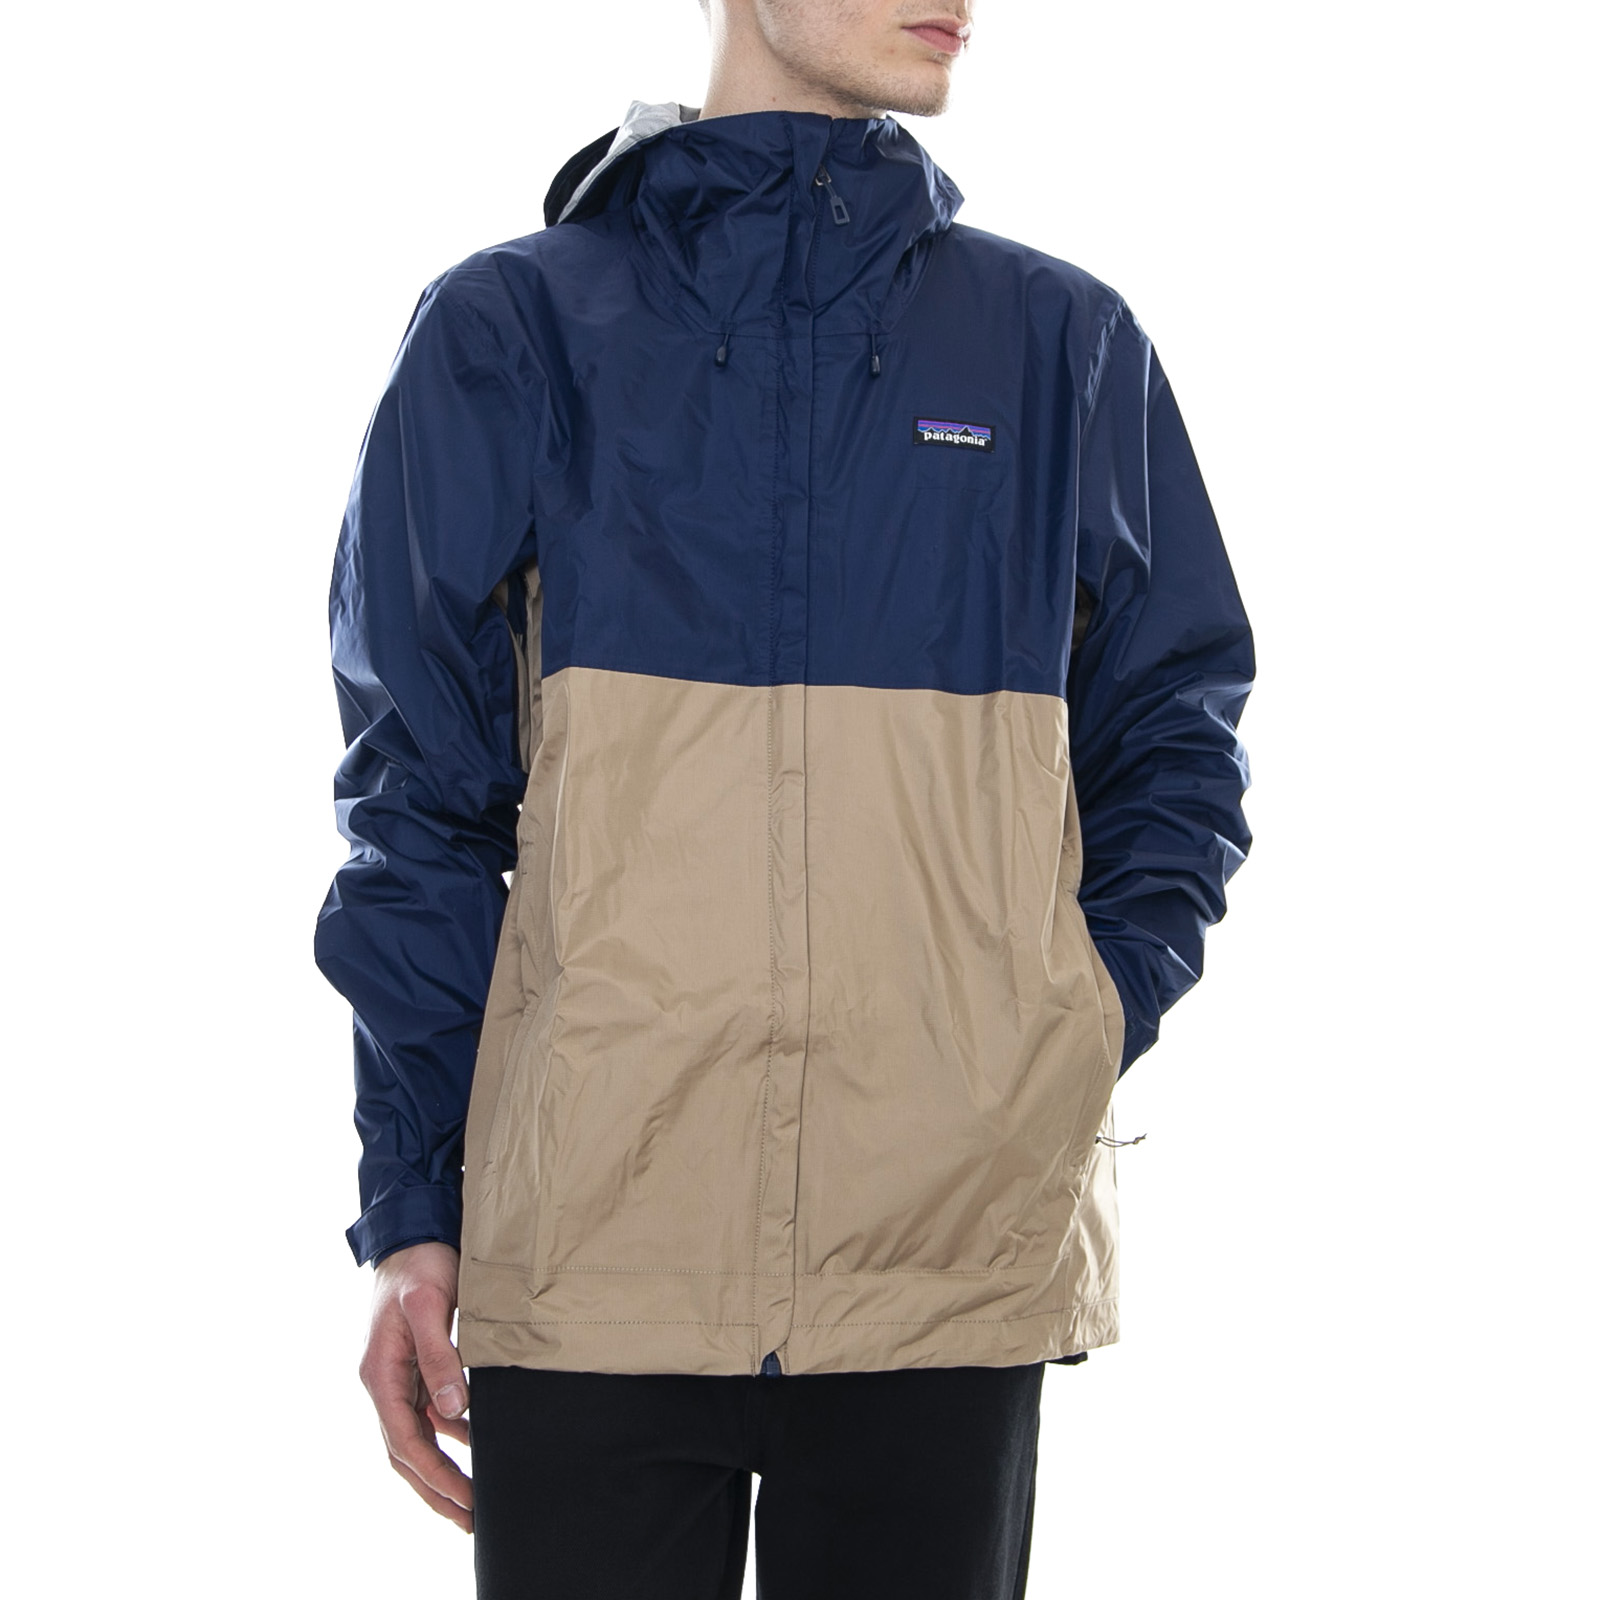 brand new b9417 14022 Details about Patagonia Torrentshell Jacket Classic Navy W/ Mojave Khaki  Lightweight Mens New